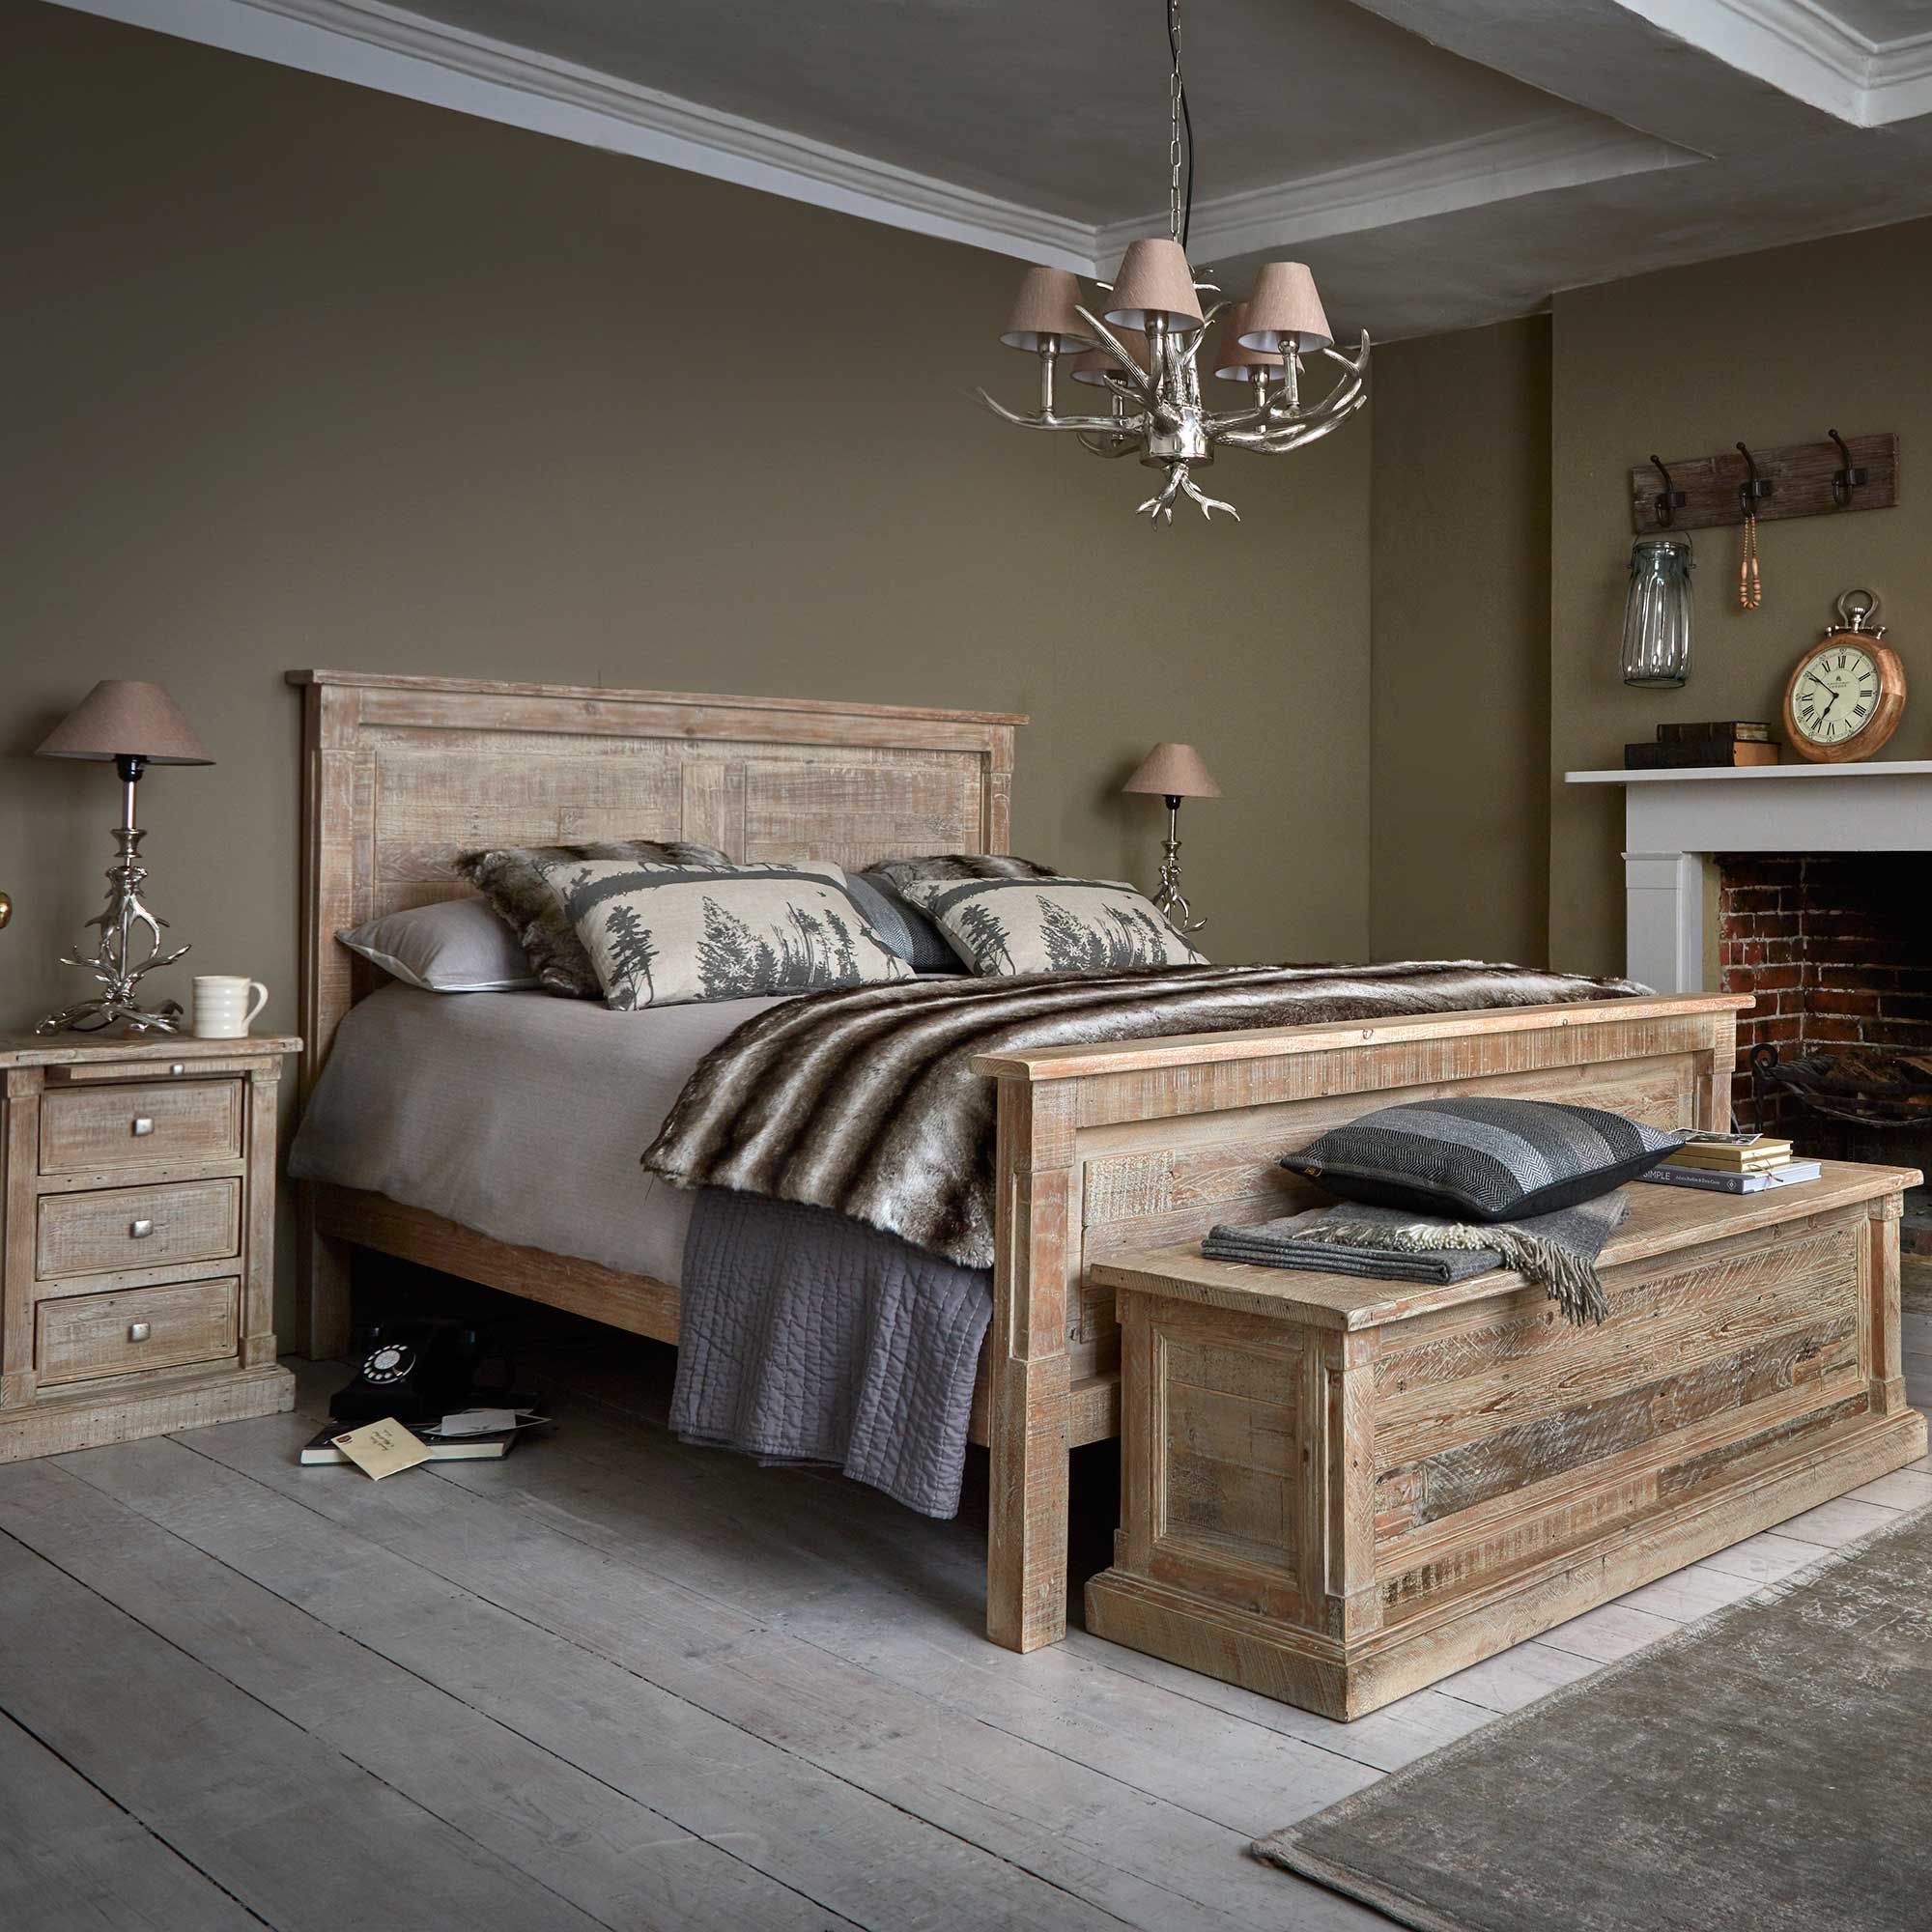 Charmant The Austen Bed Frame Is Made From Reclaimed Wood With A Classic Whitewashed  Finish.